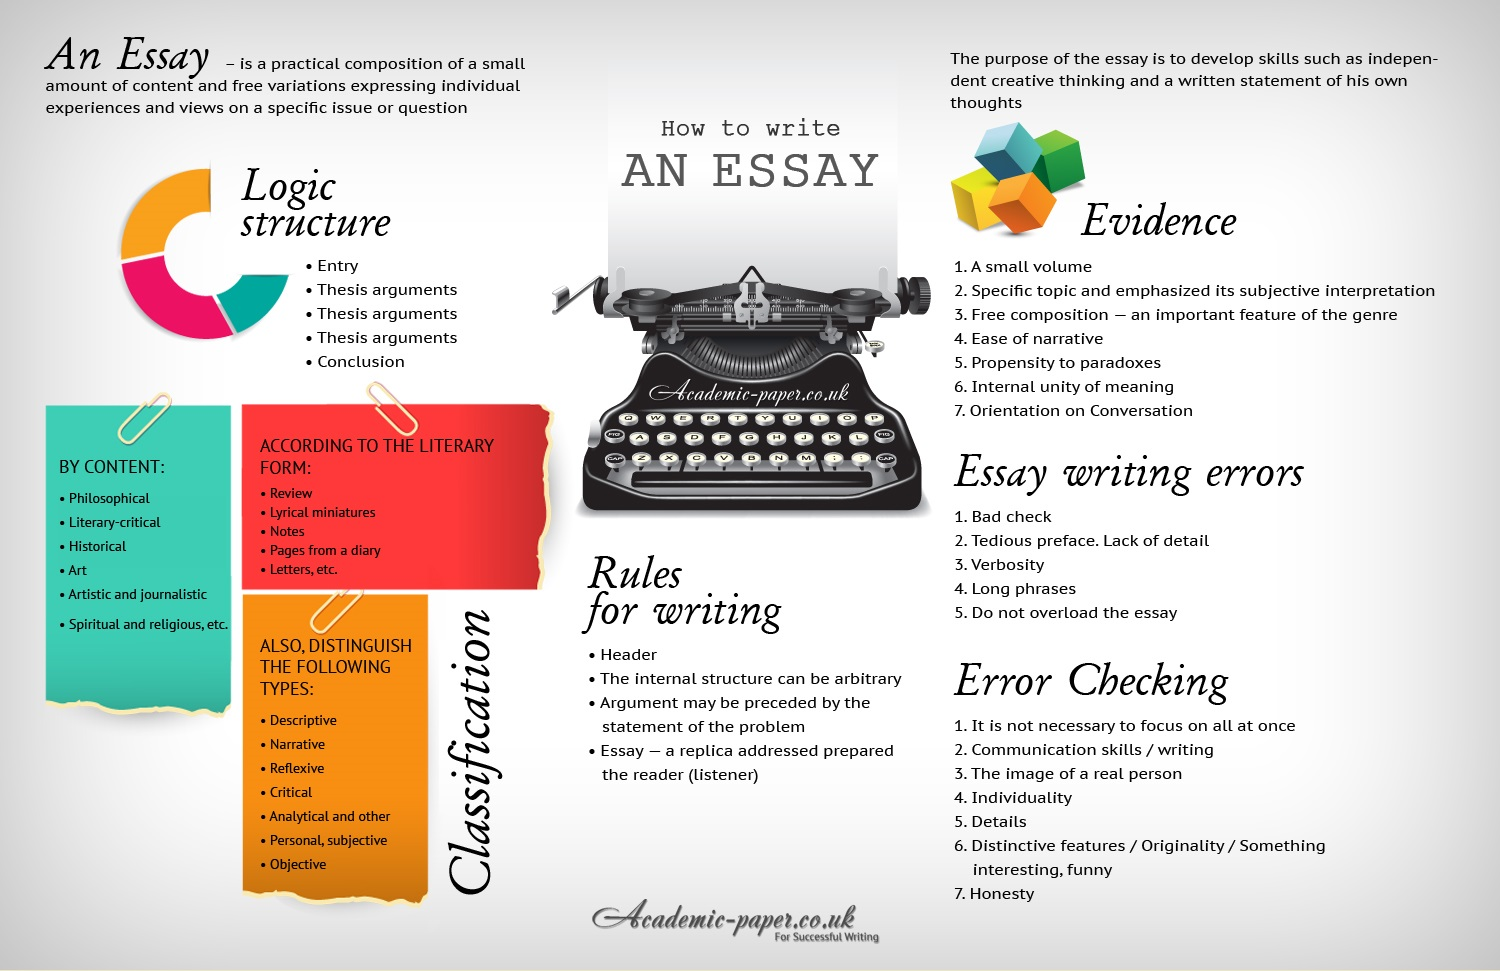 how to write an essay  academic paper blog